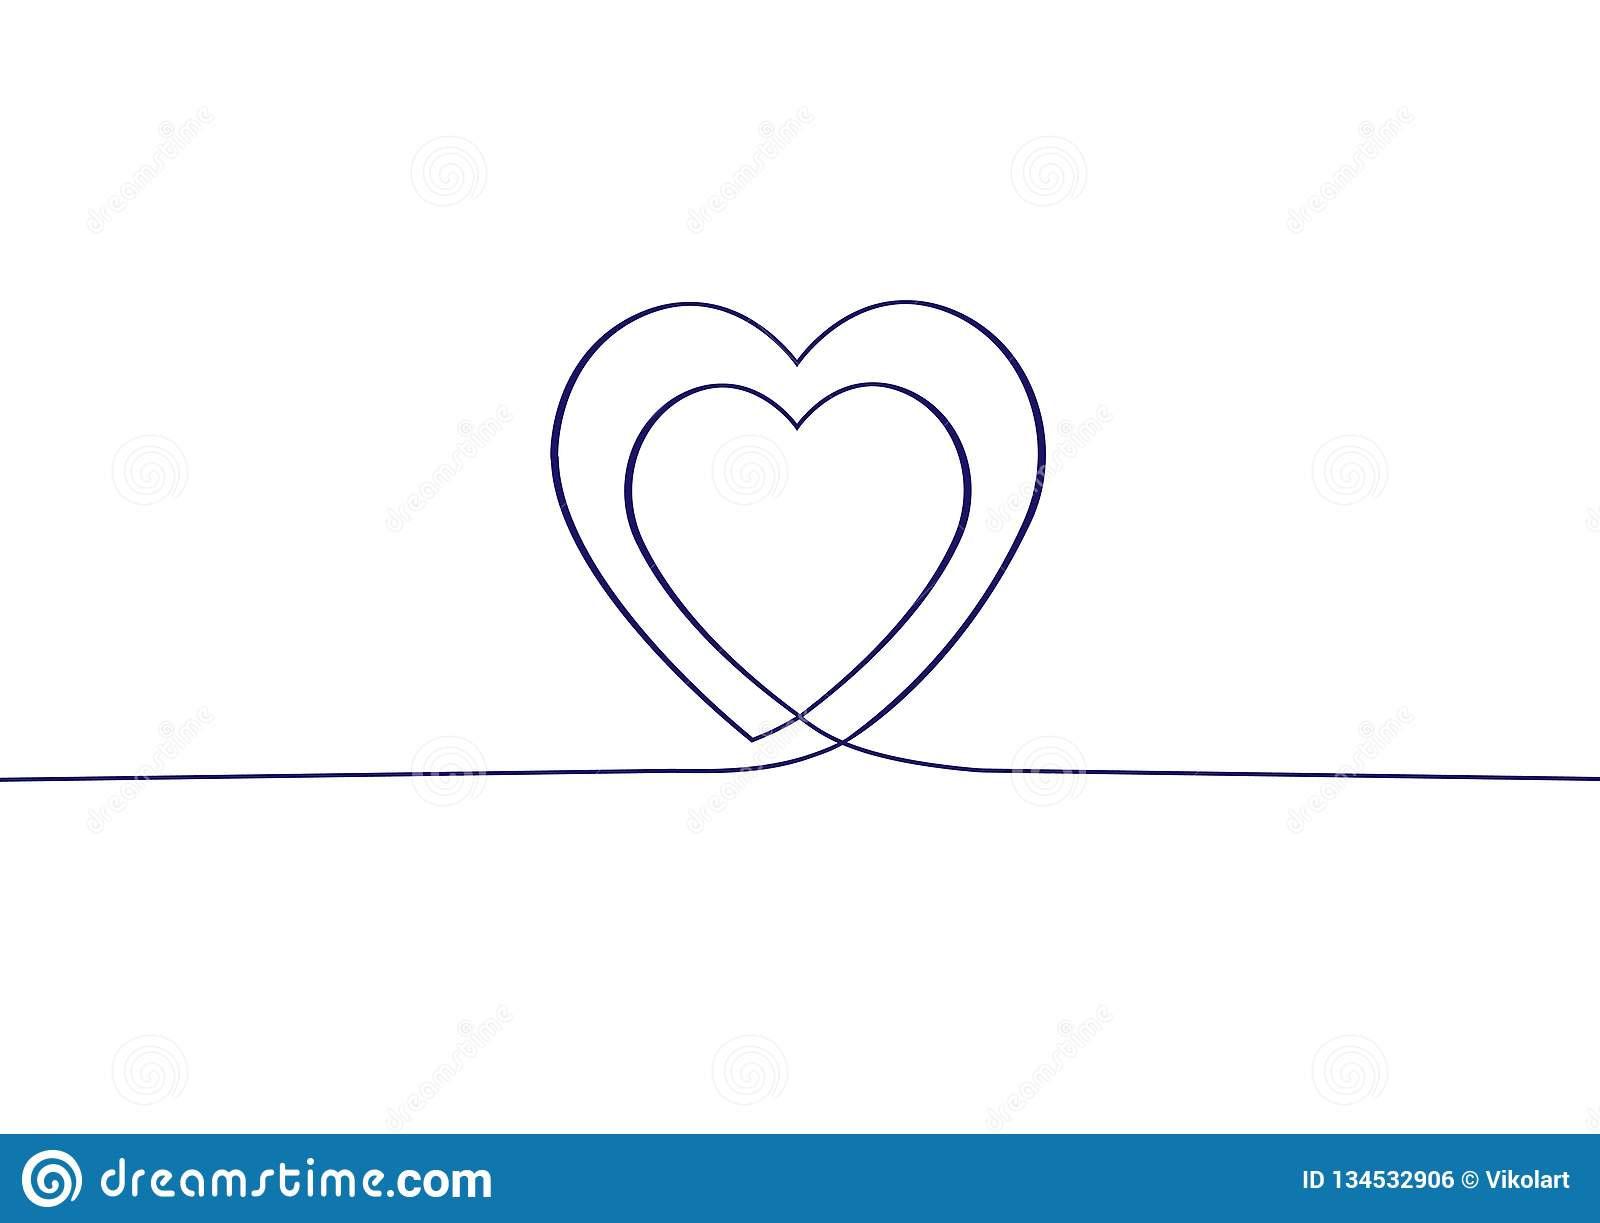 Drawing Hearts Stock Illustrations 60 484 Drawing Hearts Stock Illustrations Vectors Clipart Dreamstime